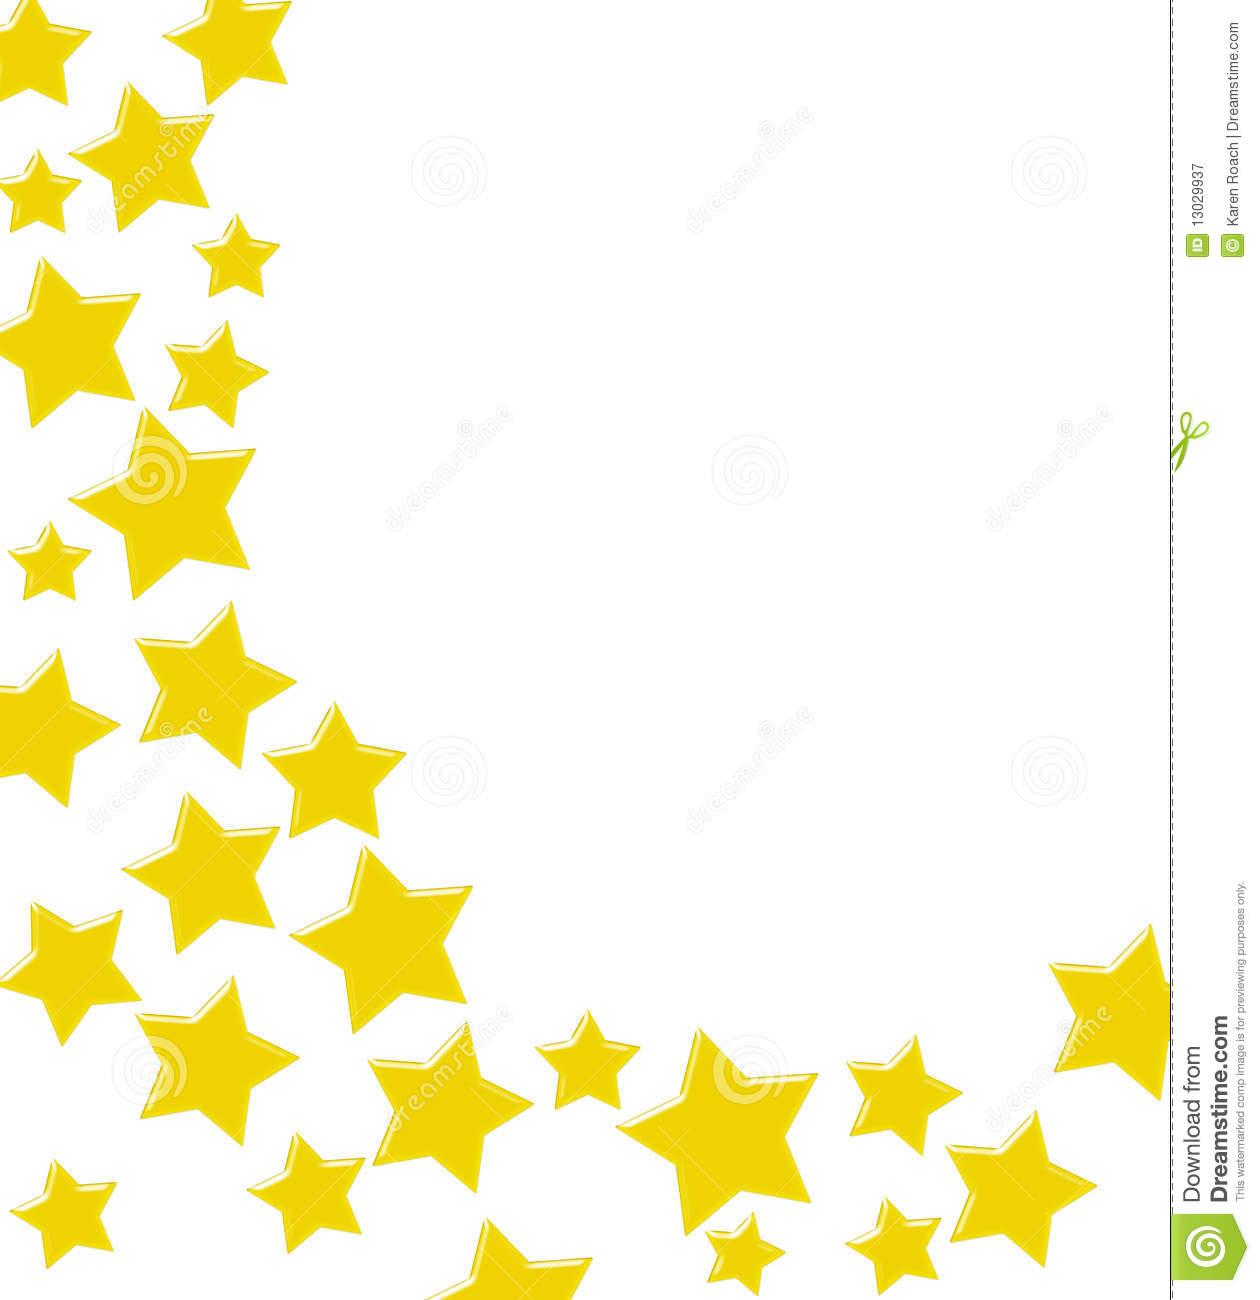 winning gold star border stock illustration illustration of yellow